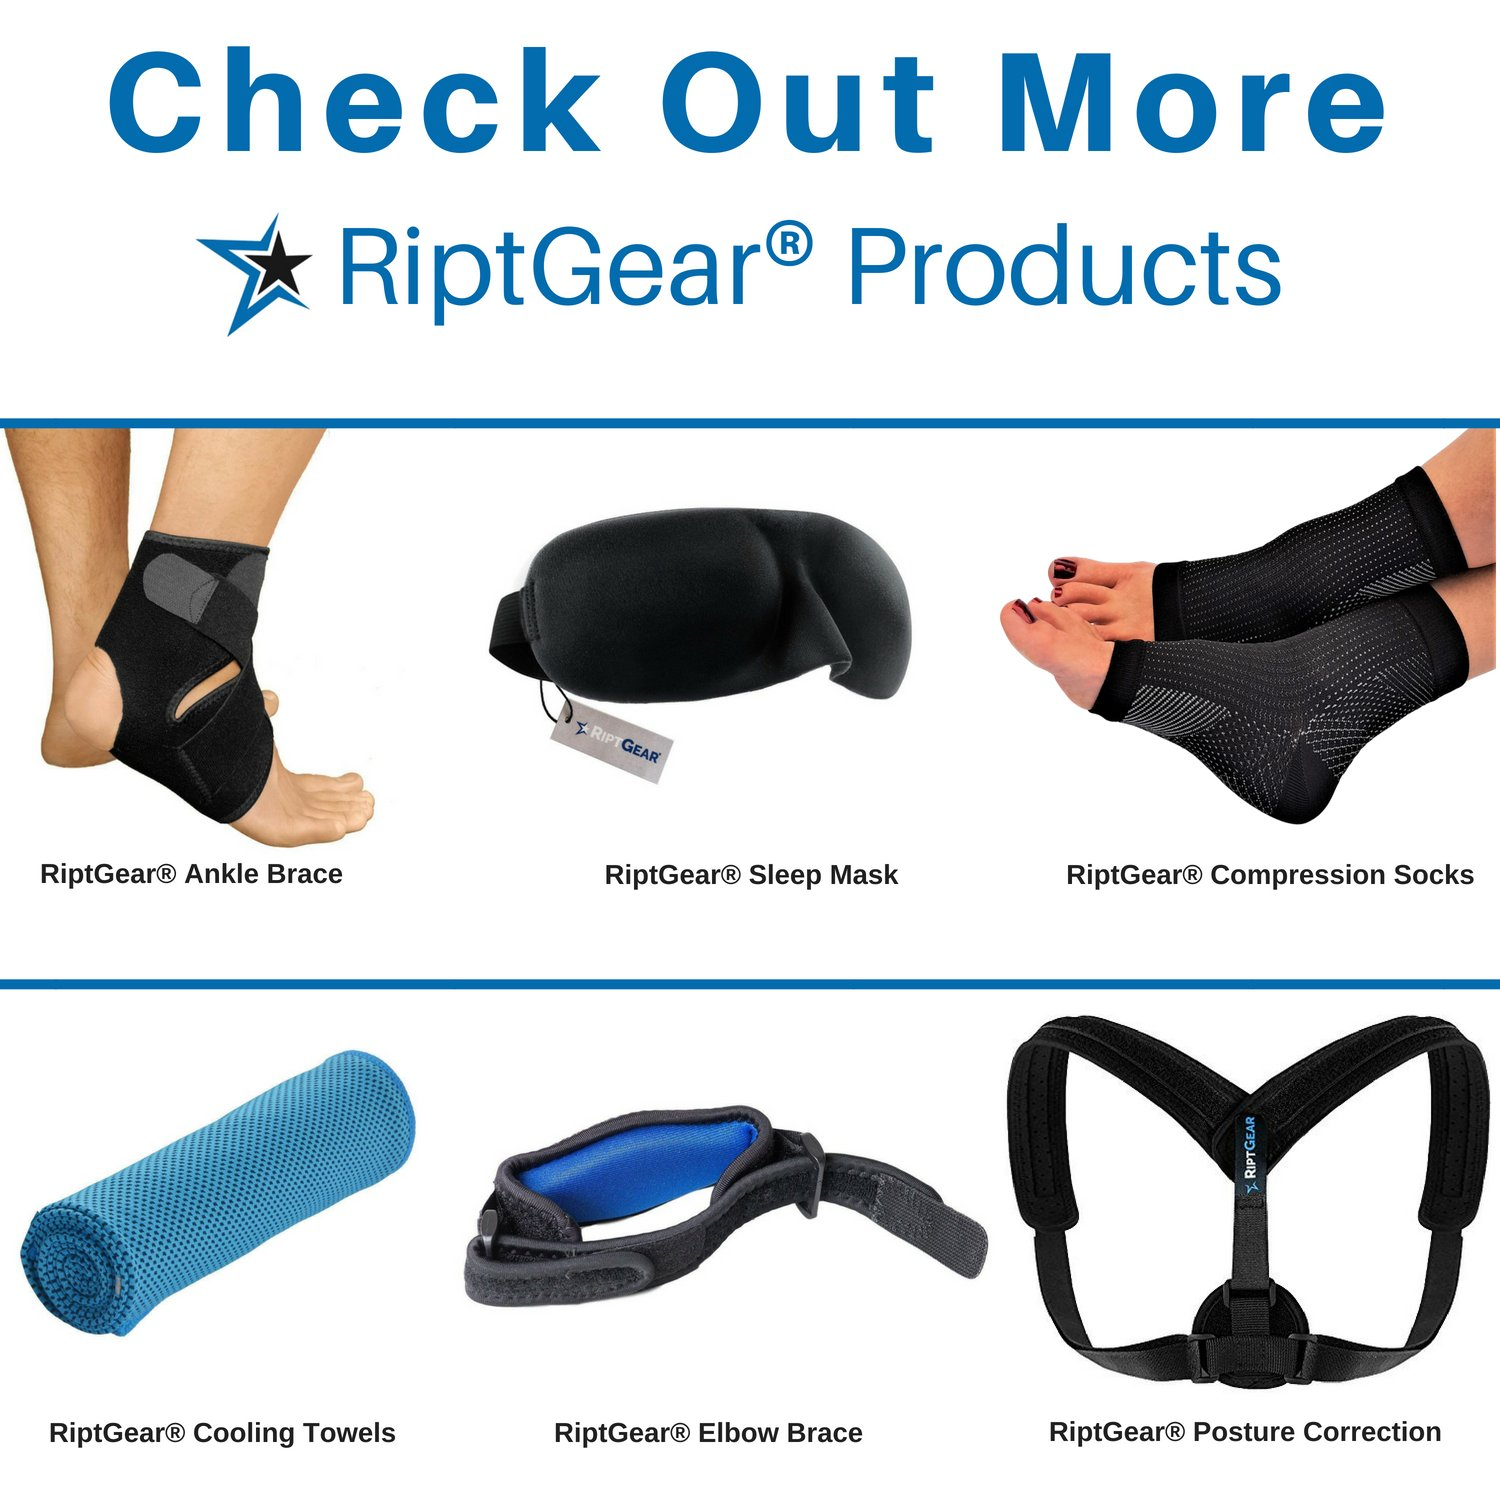 NEW-Knee-Compression-Sleeve-for-Men-and-Women-by-RiptGear-Knee-Brace-Support thumbnail 23